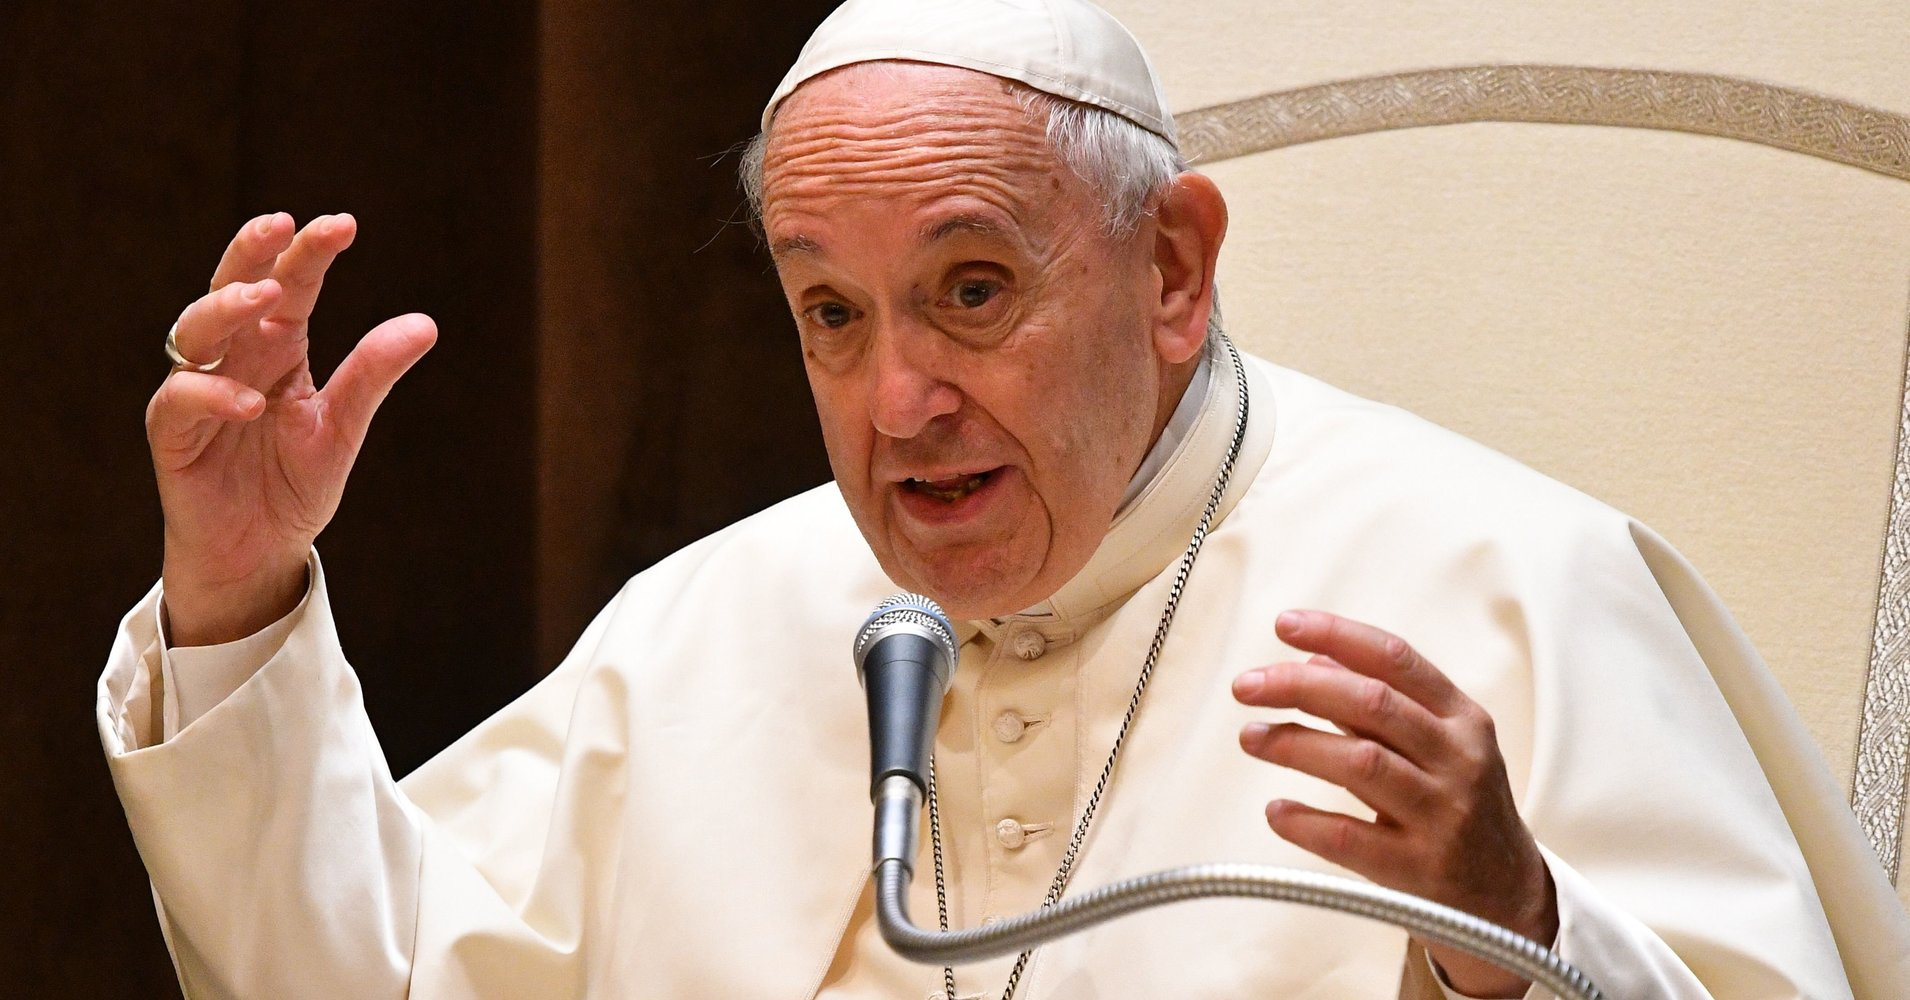 Pope Francis Warns Oil Executives That Fossil Fuels Threaten Humanity